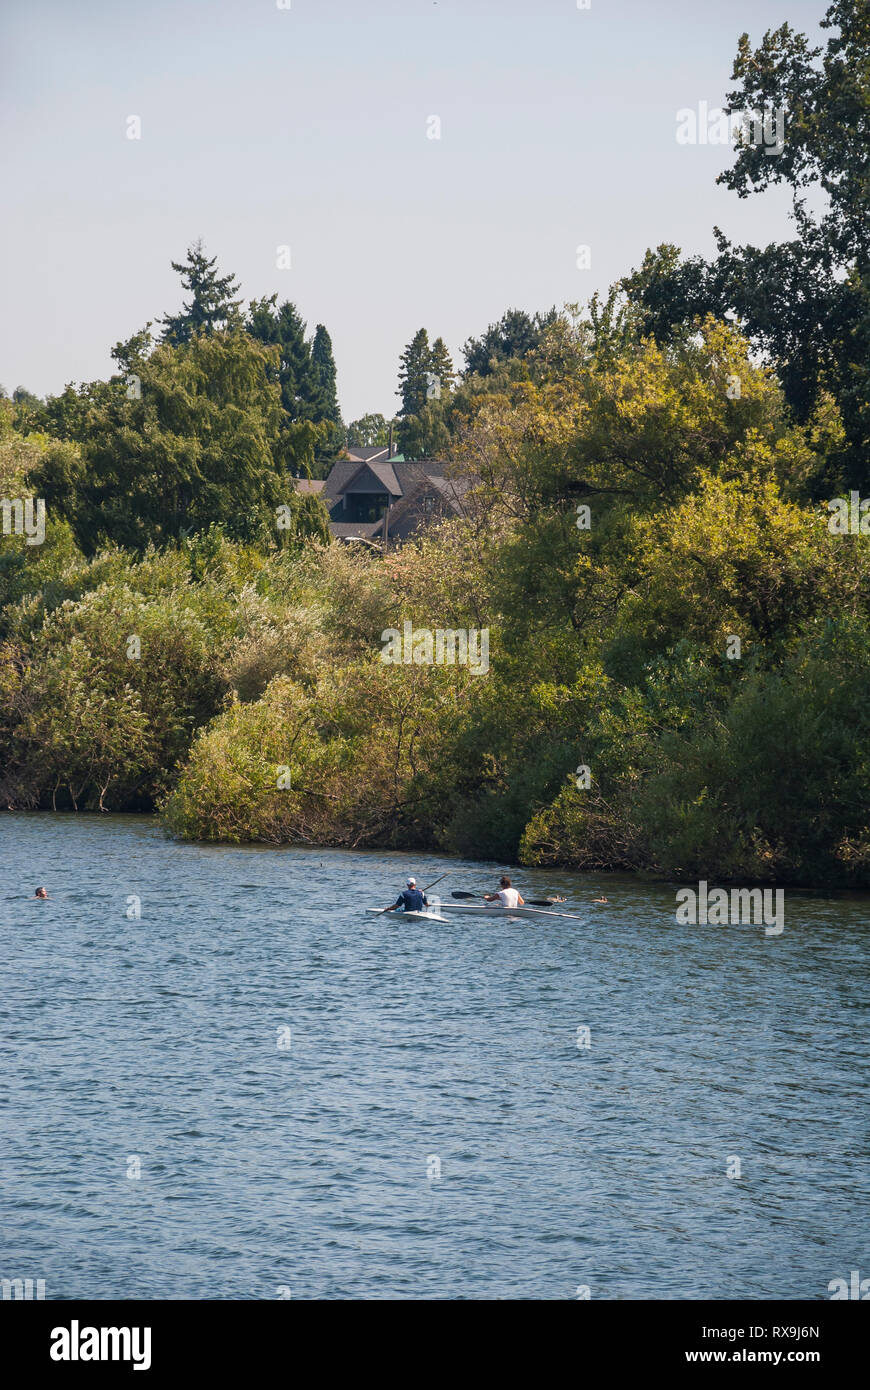 Two kayakers and a swimmer in Green Lake in Seattle, Washington. - Stock Image